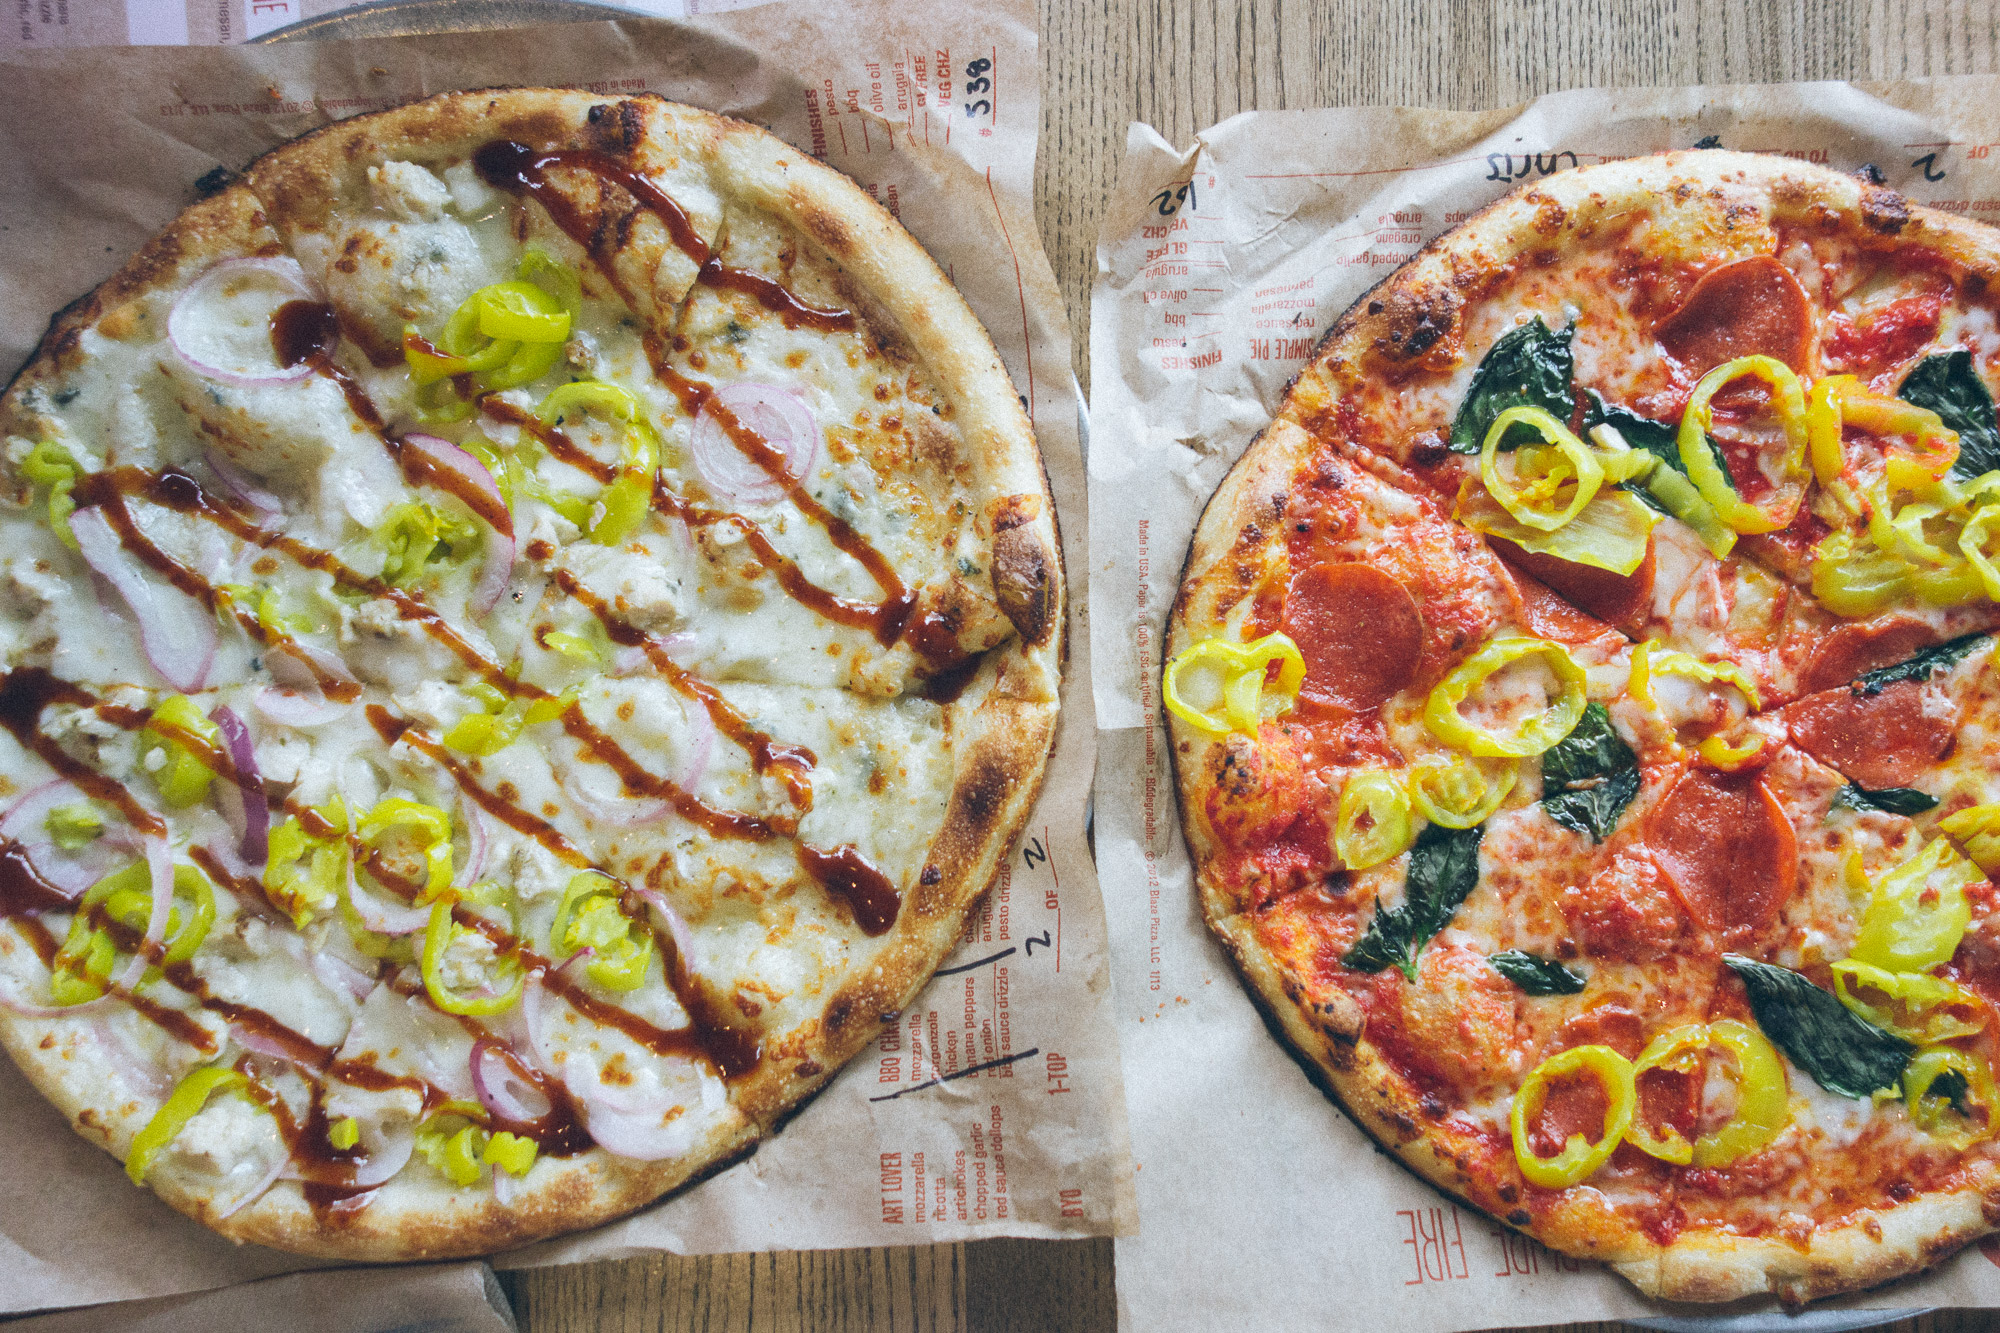 Two pizzas with different toppings